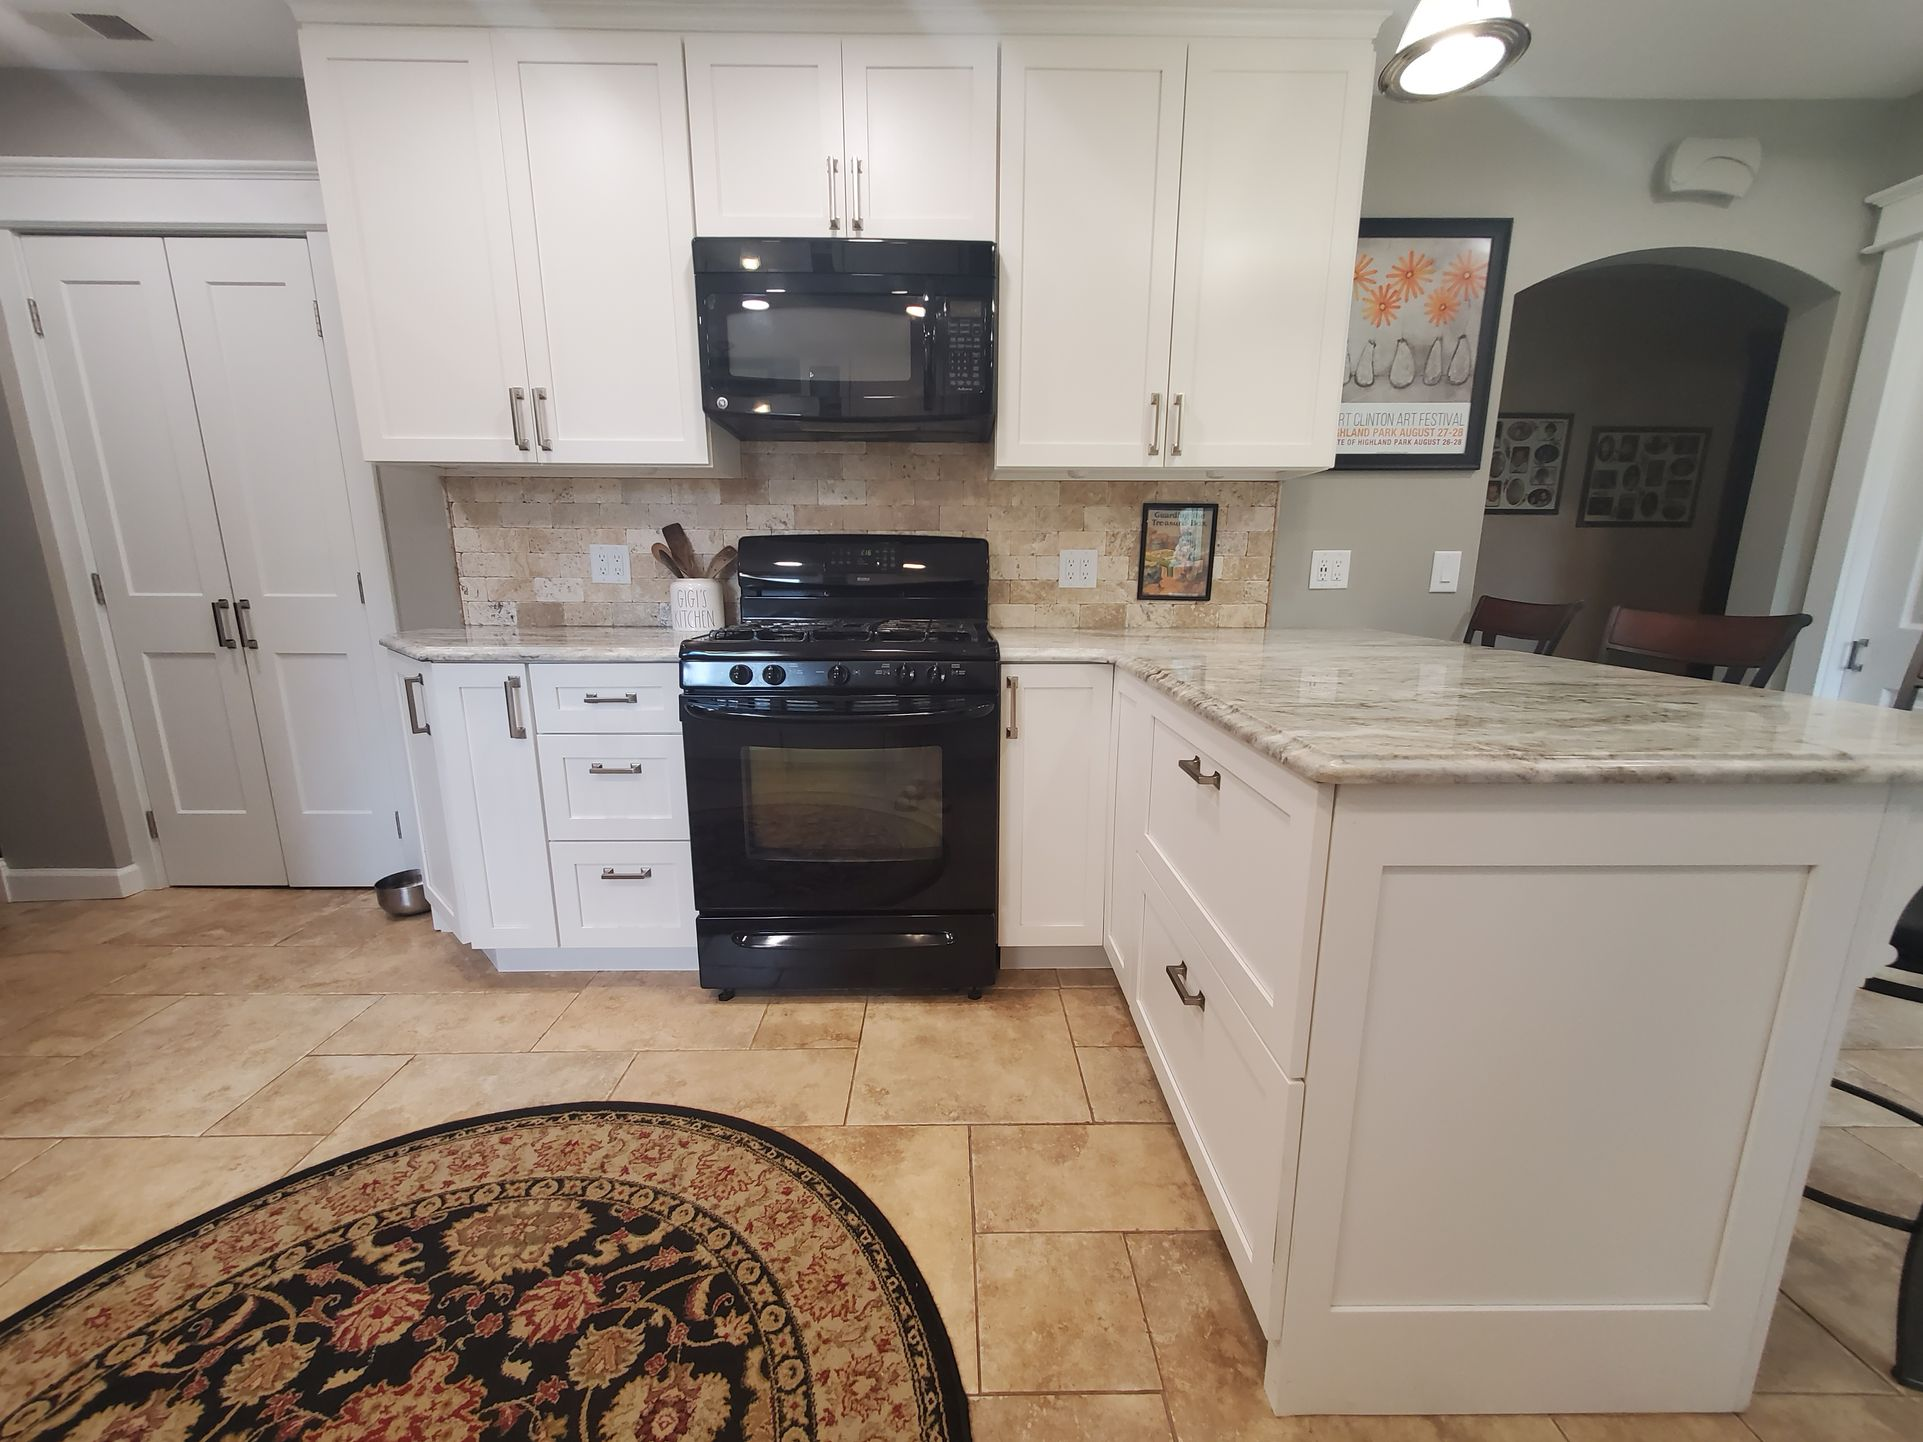 David Harney Kitchen Cabinets Renovation Sunset Ln Antioch IL Range